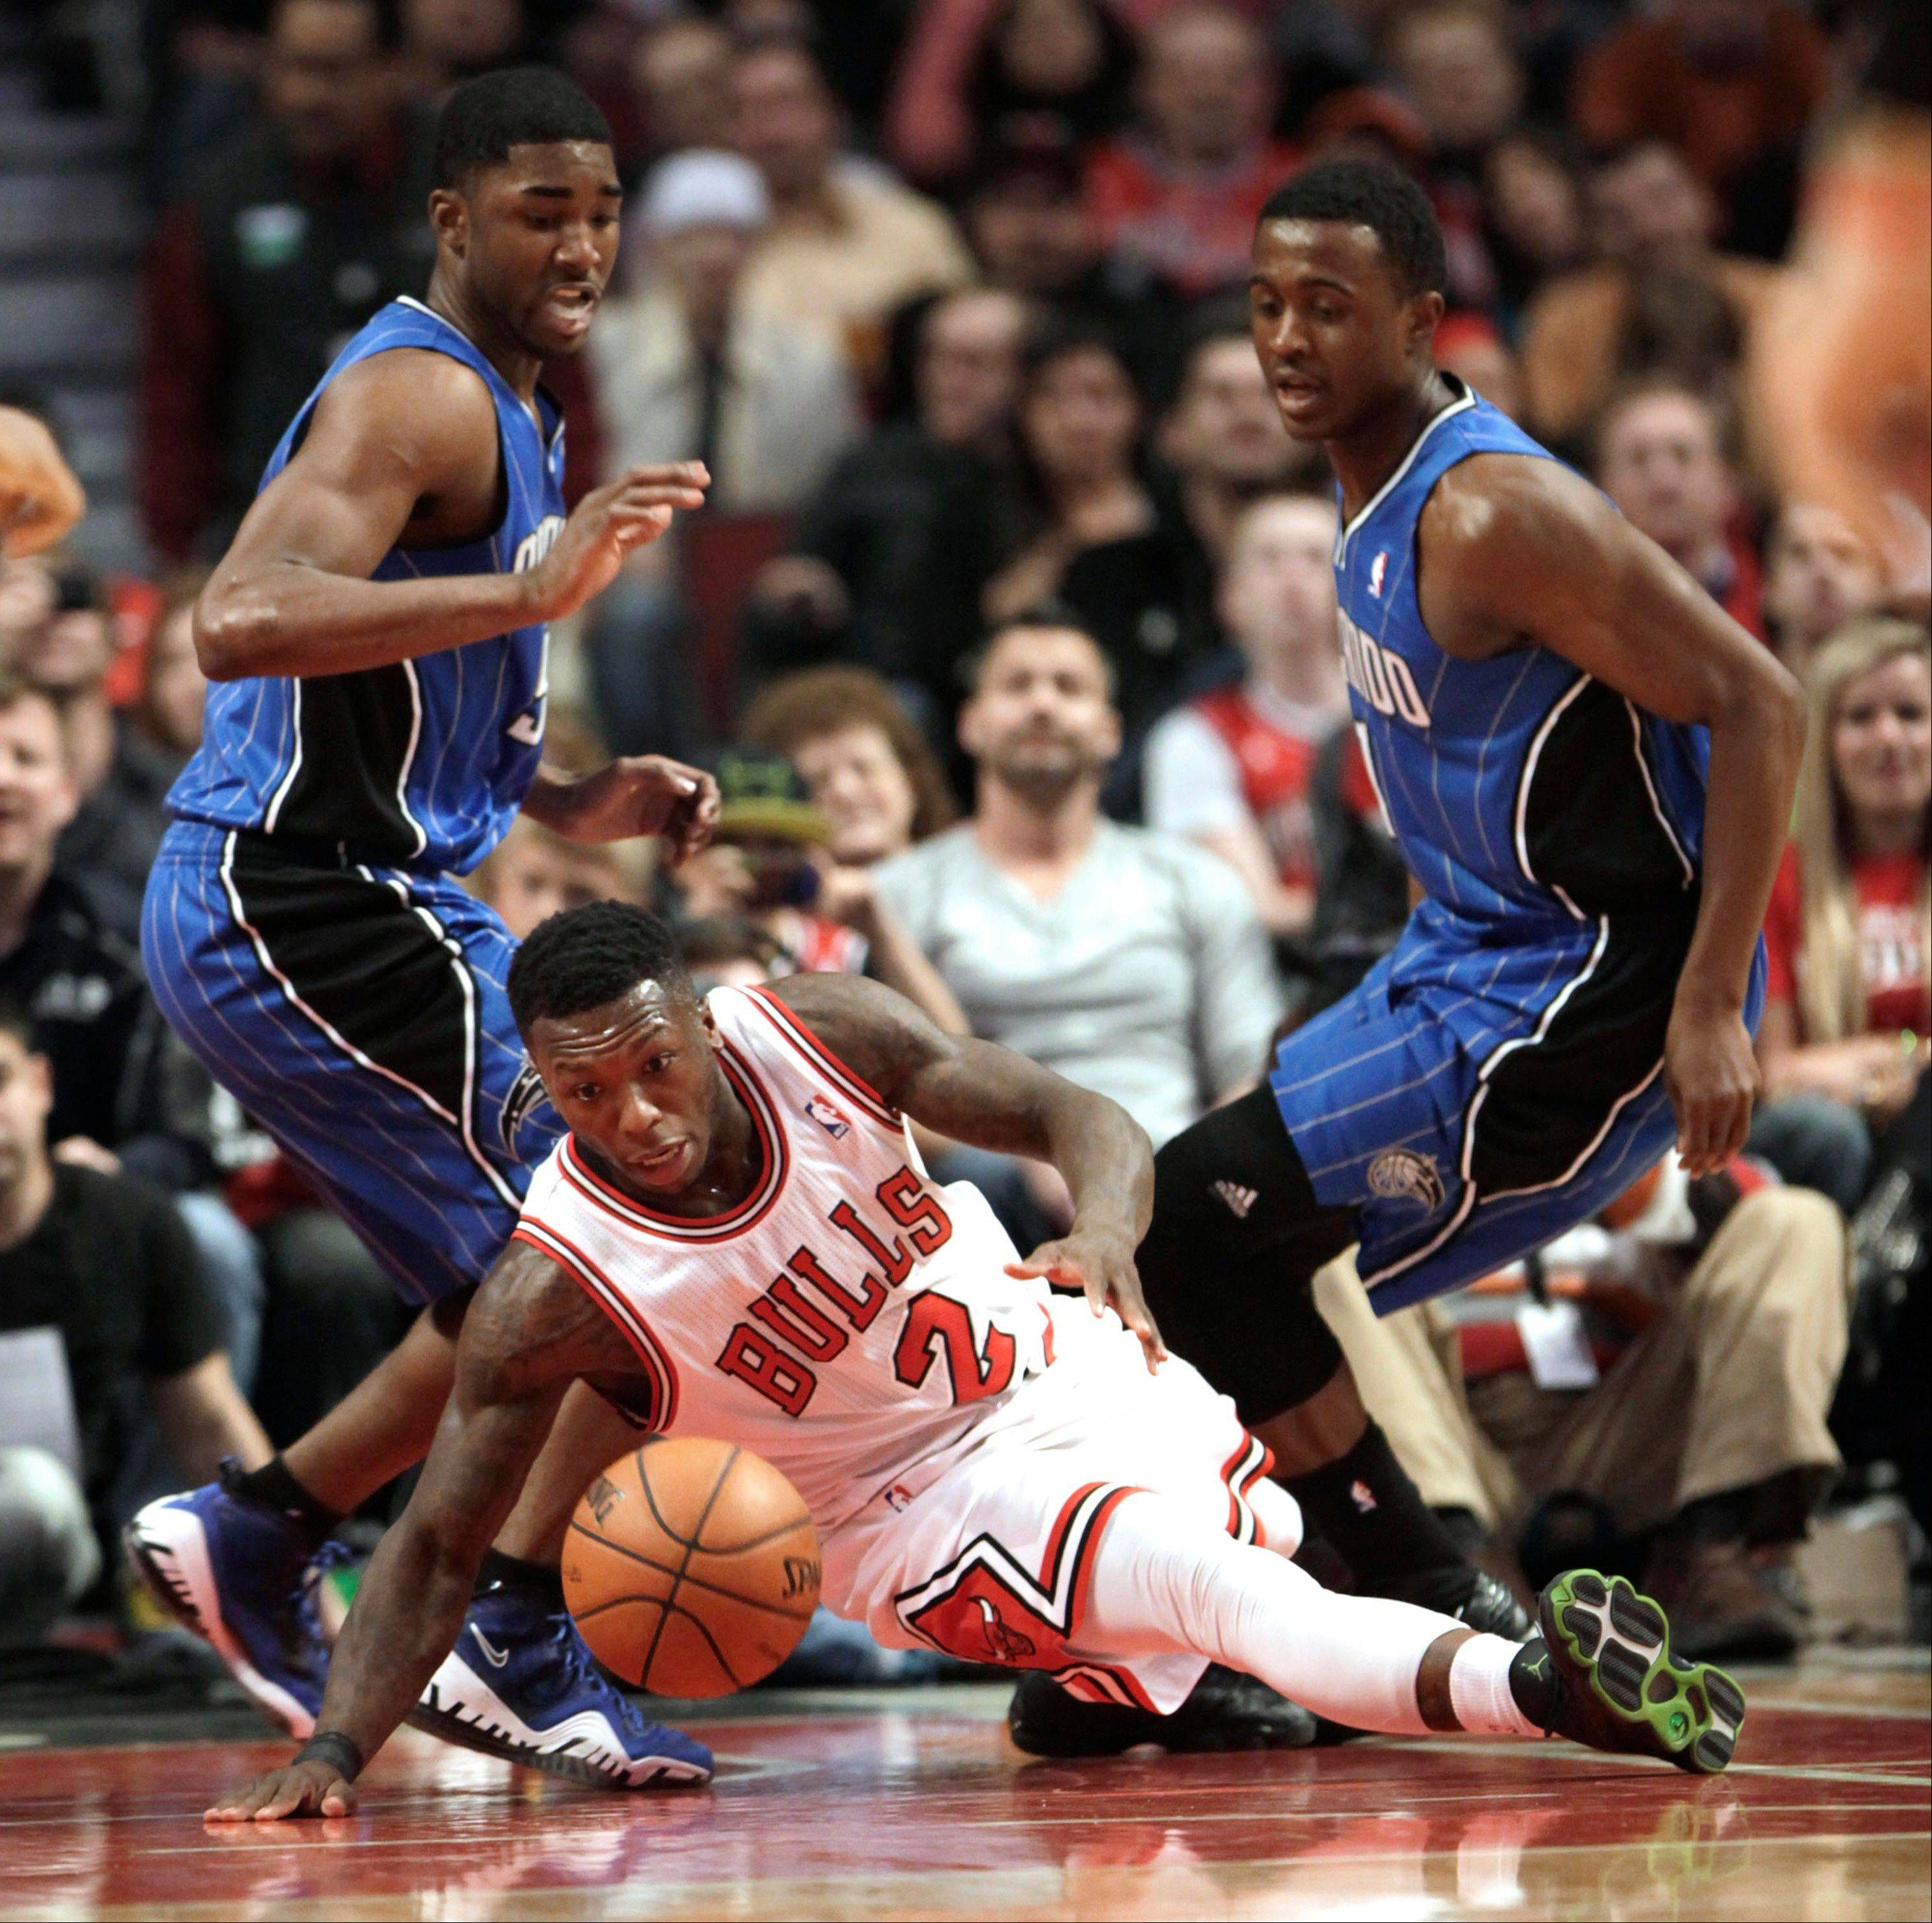 Due to injuries, Nate Robinson started Sunday�s game against Detroit. Bulls coach Tom Thibodeau said Monday, however, he thought his second unit missed Robinson�s energy and he may use him in a reserve role Tuesday against Toronto.